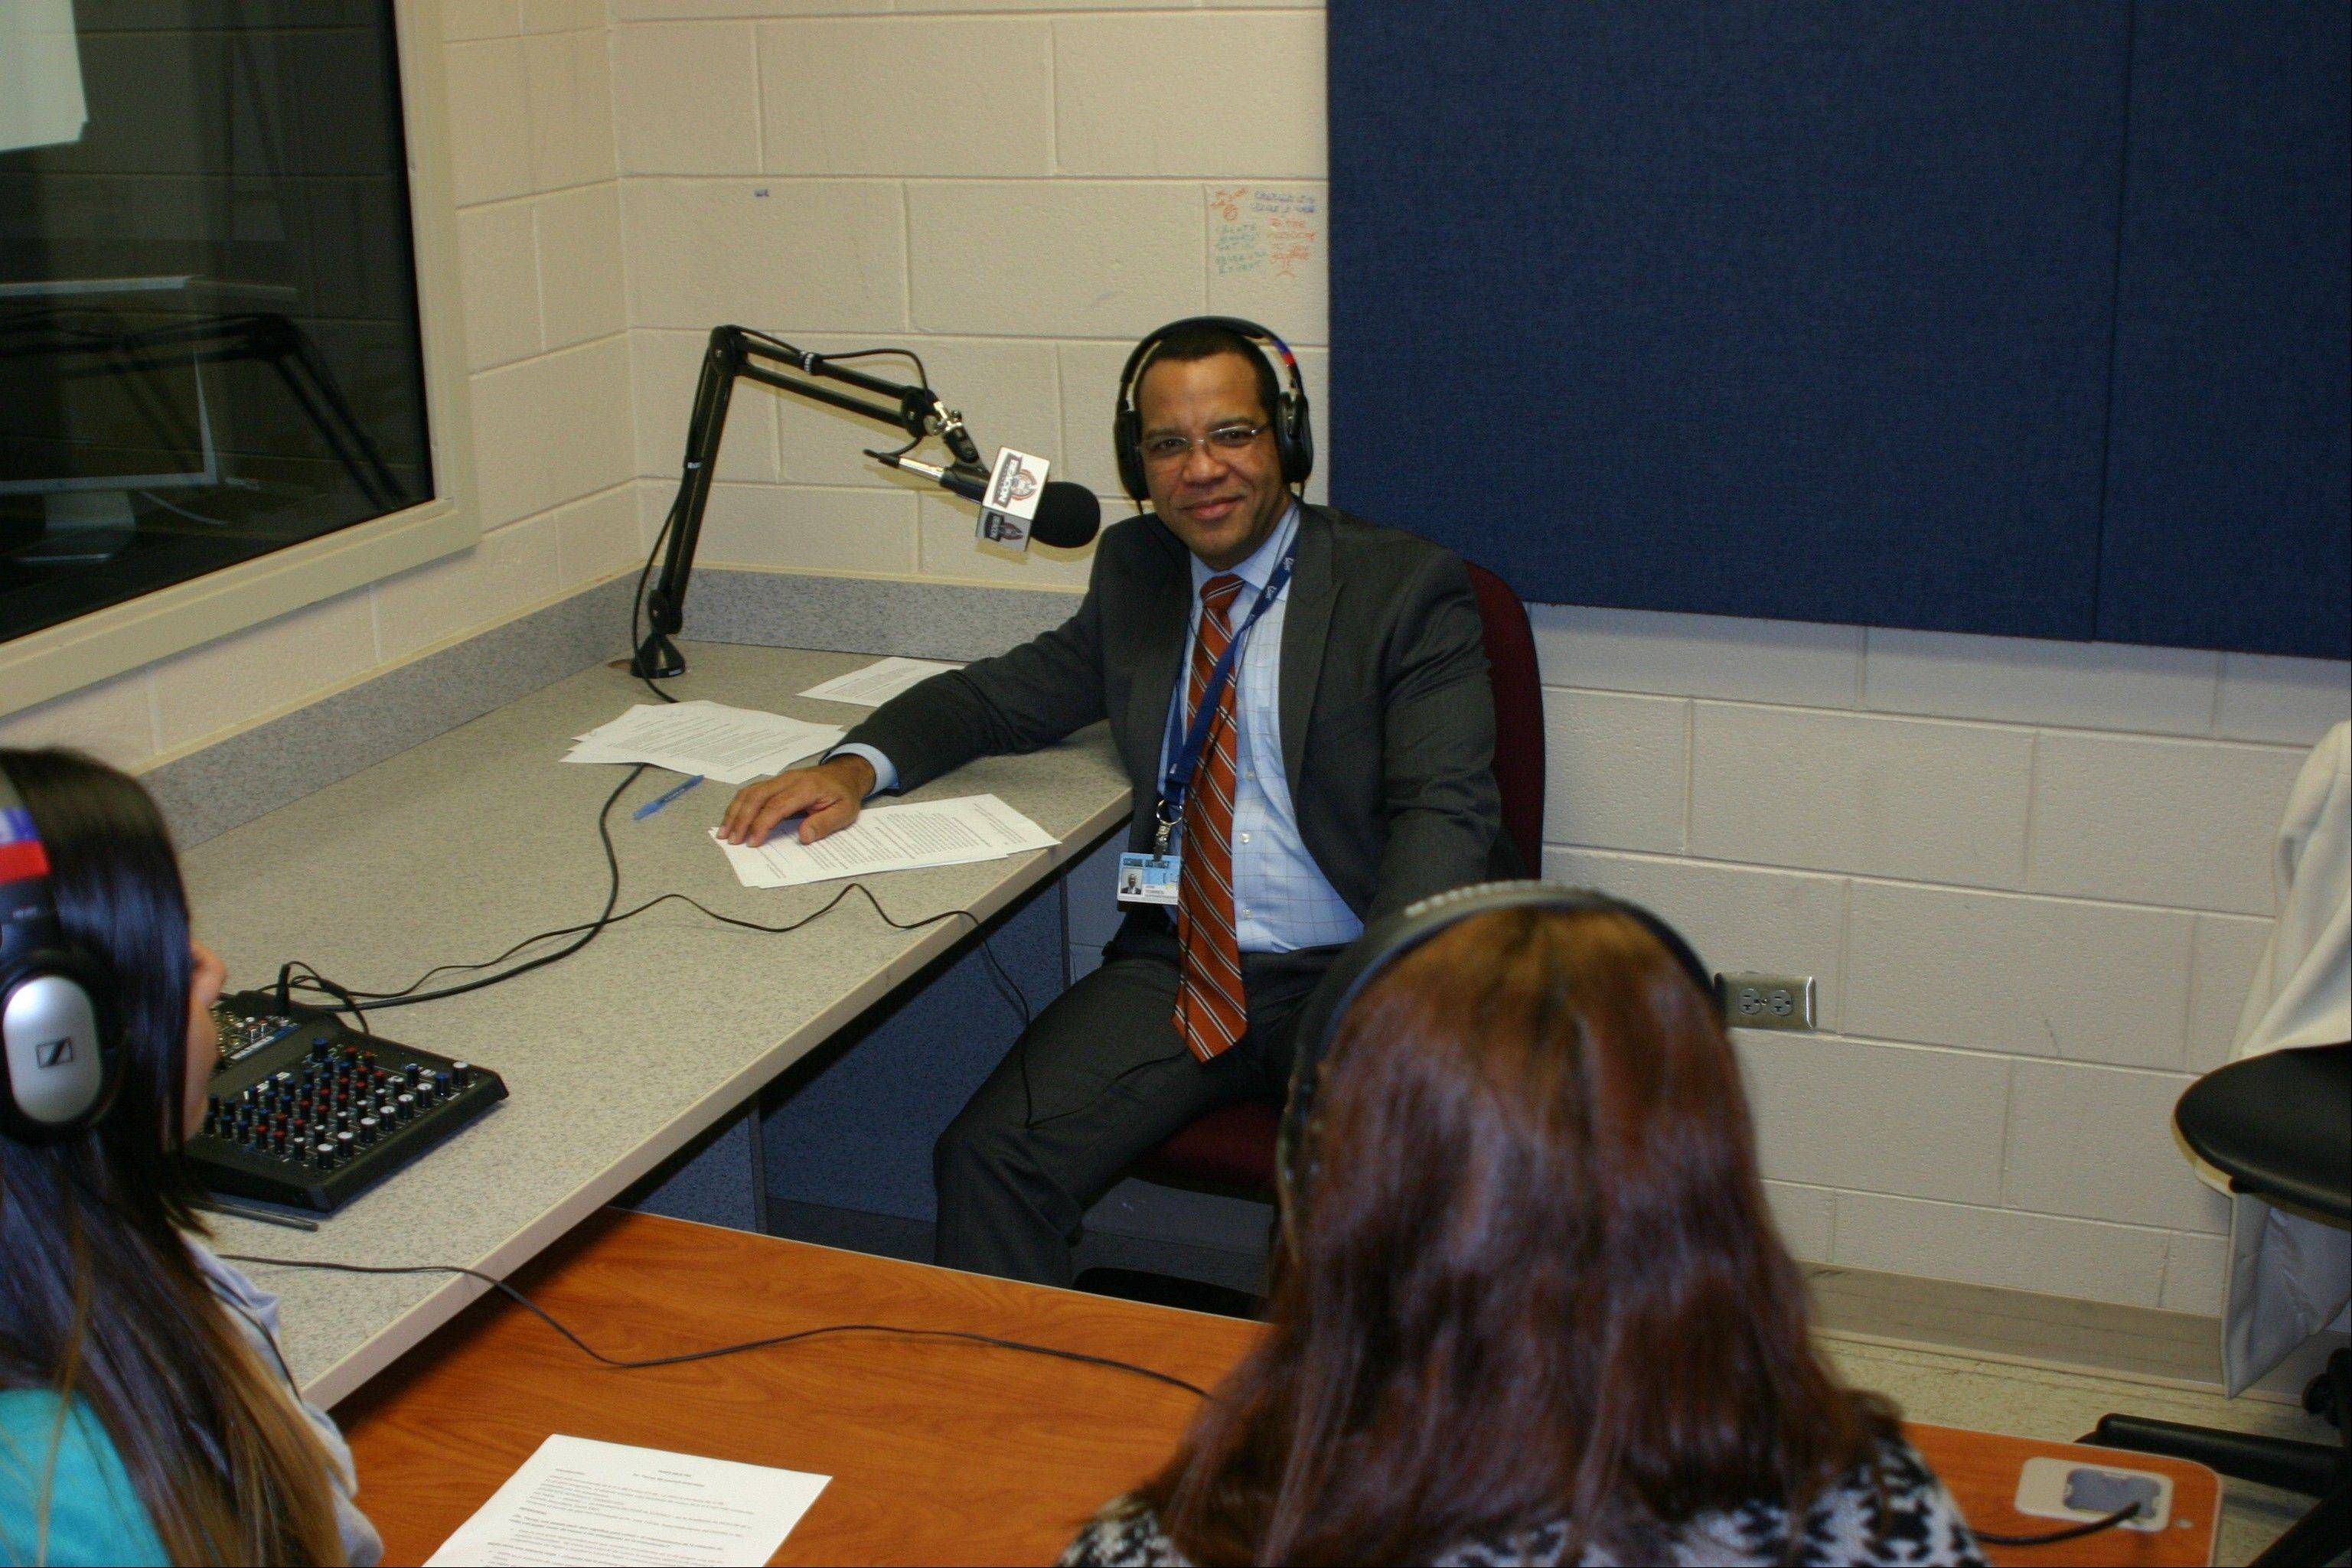 BEACON Academy seniors Tanya Ocampo, left, and Paula Lopez, right, interview U-46 Superintendent Dr. Jos� Torres in Spanish for the station's relaunch show on WEPS 88.9 FM Tuesday, Nov. 12.